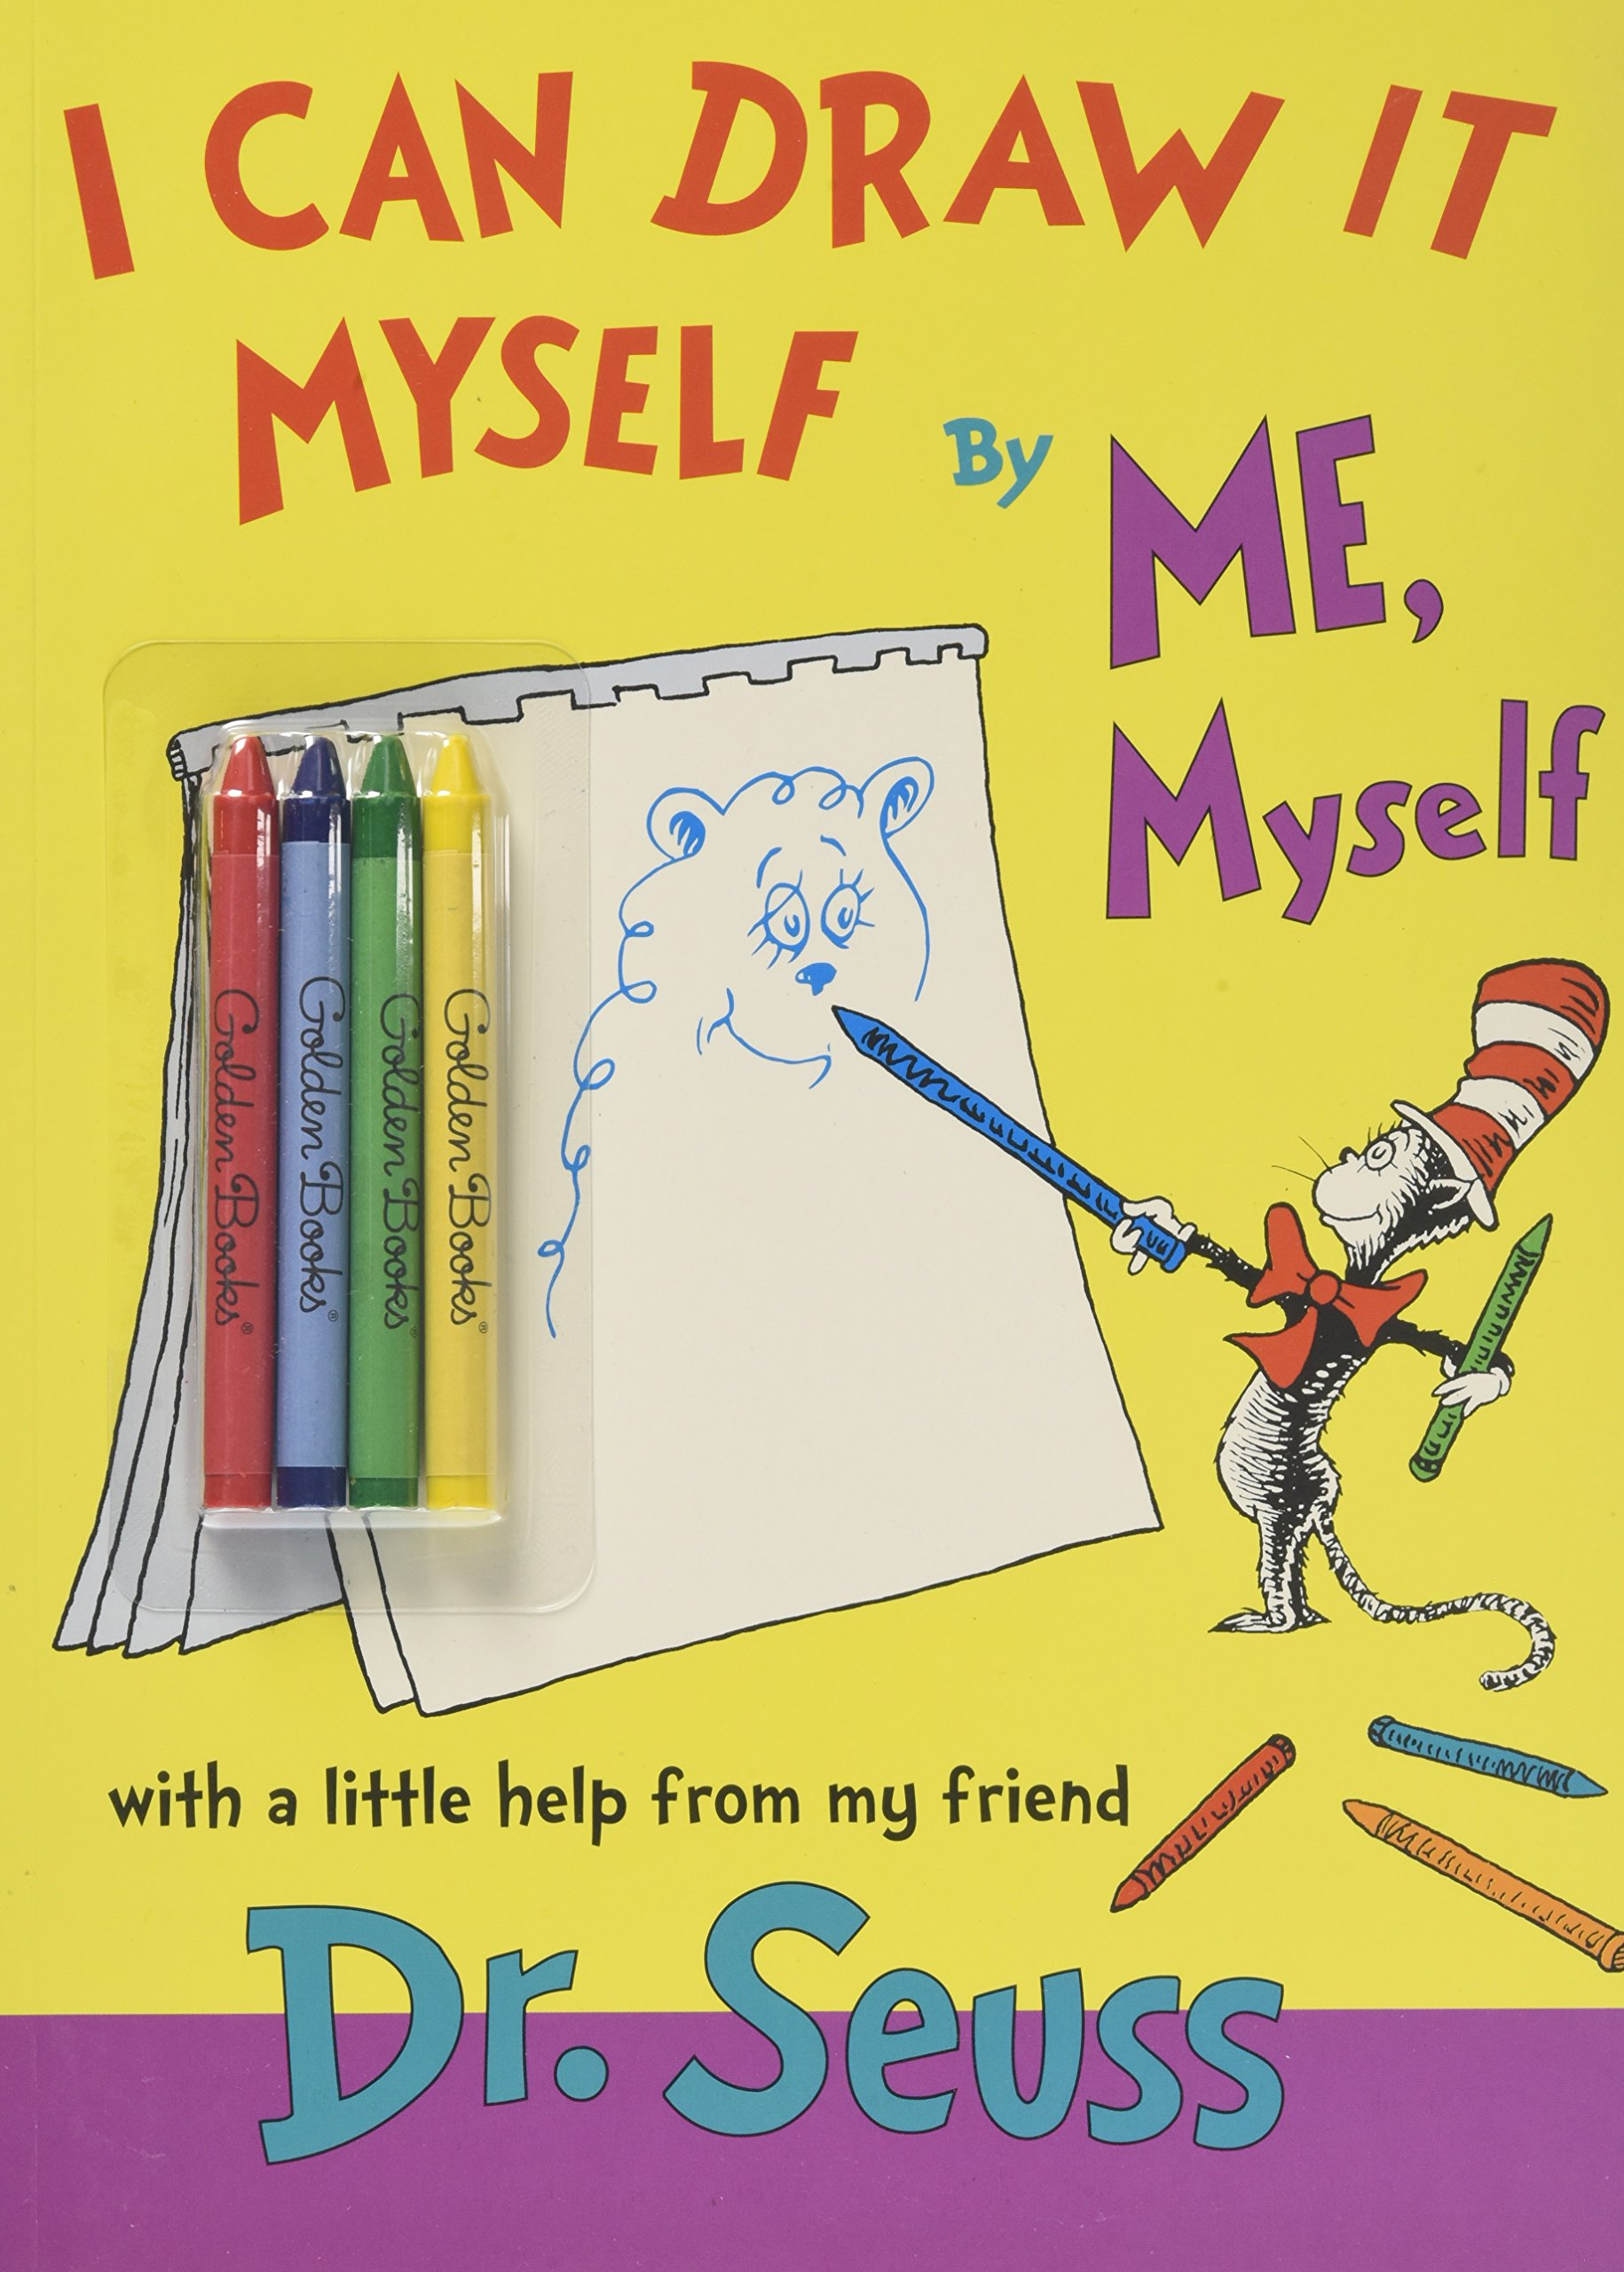 I Can Draw It Myself, By Me, Myself (Classic Seuss) by Golden Books (Image #1)